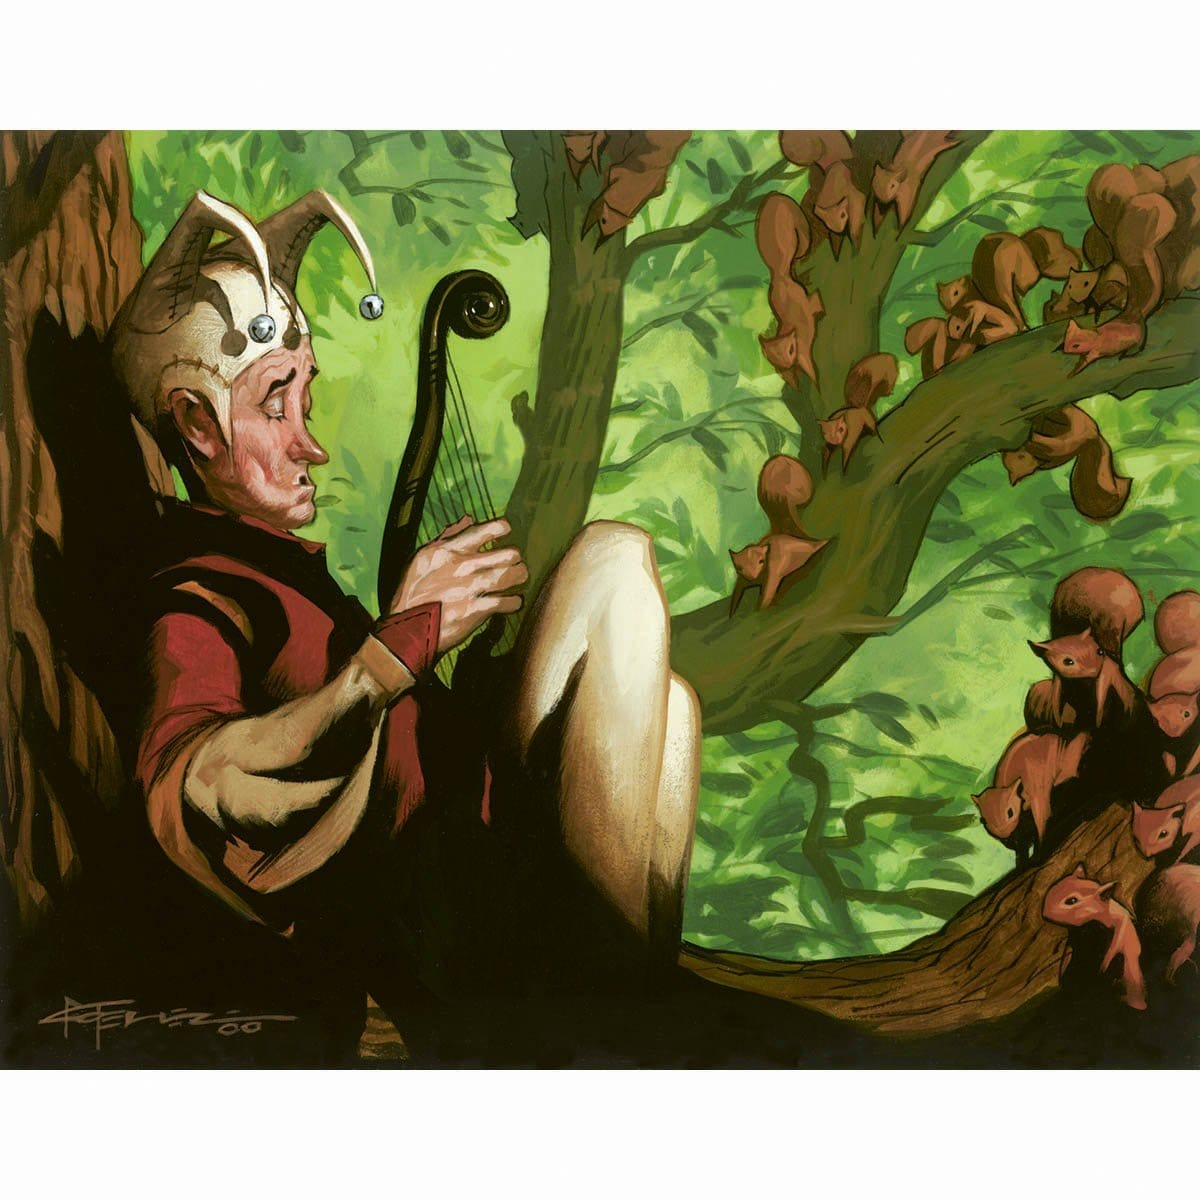 Nut Collector Print - Print - Original Magic Art - Accessories for Magic the Gathering and other card games